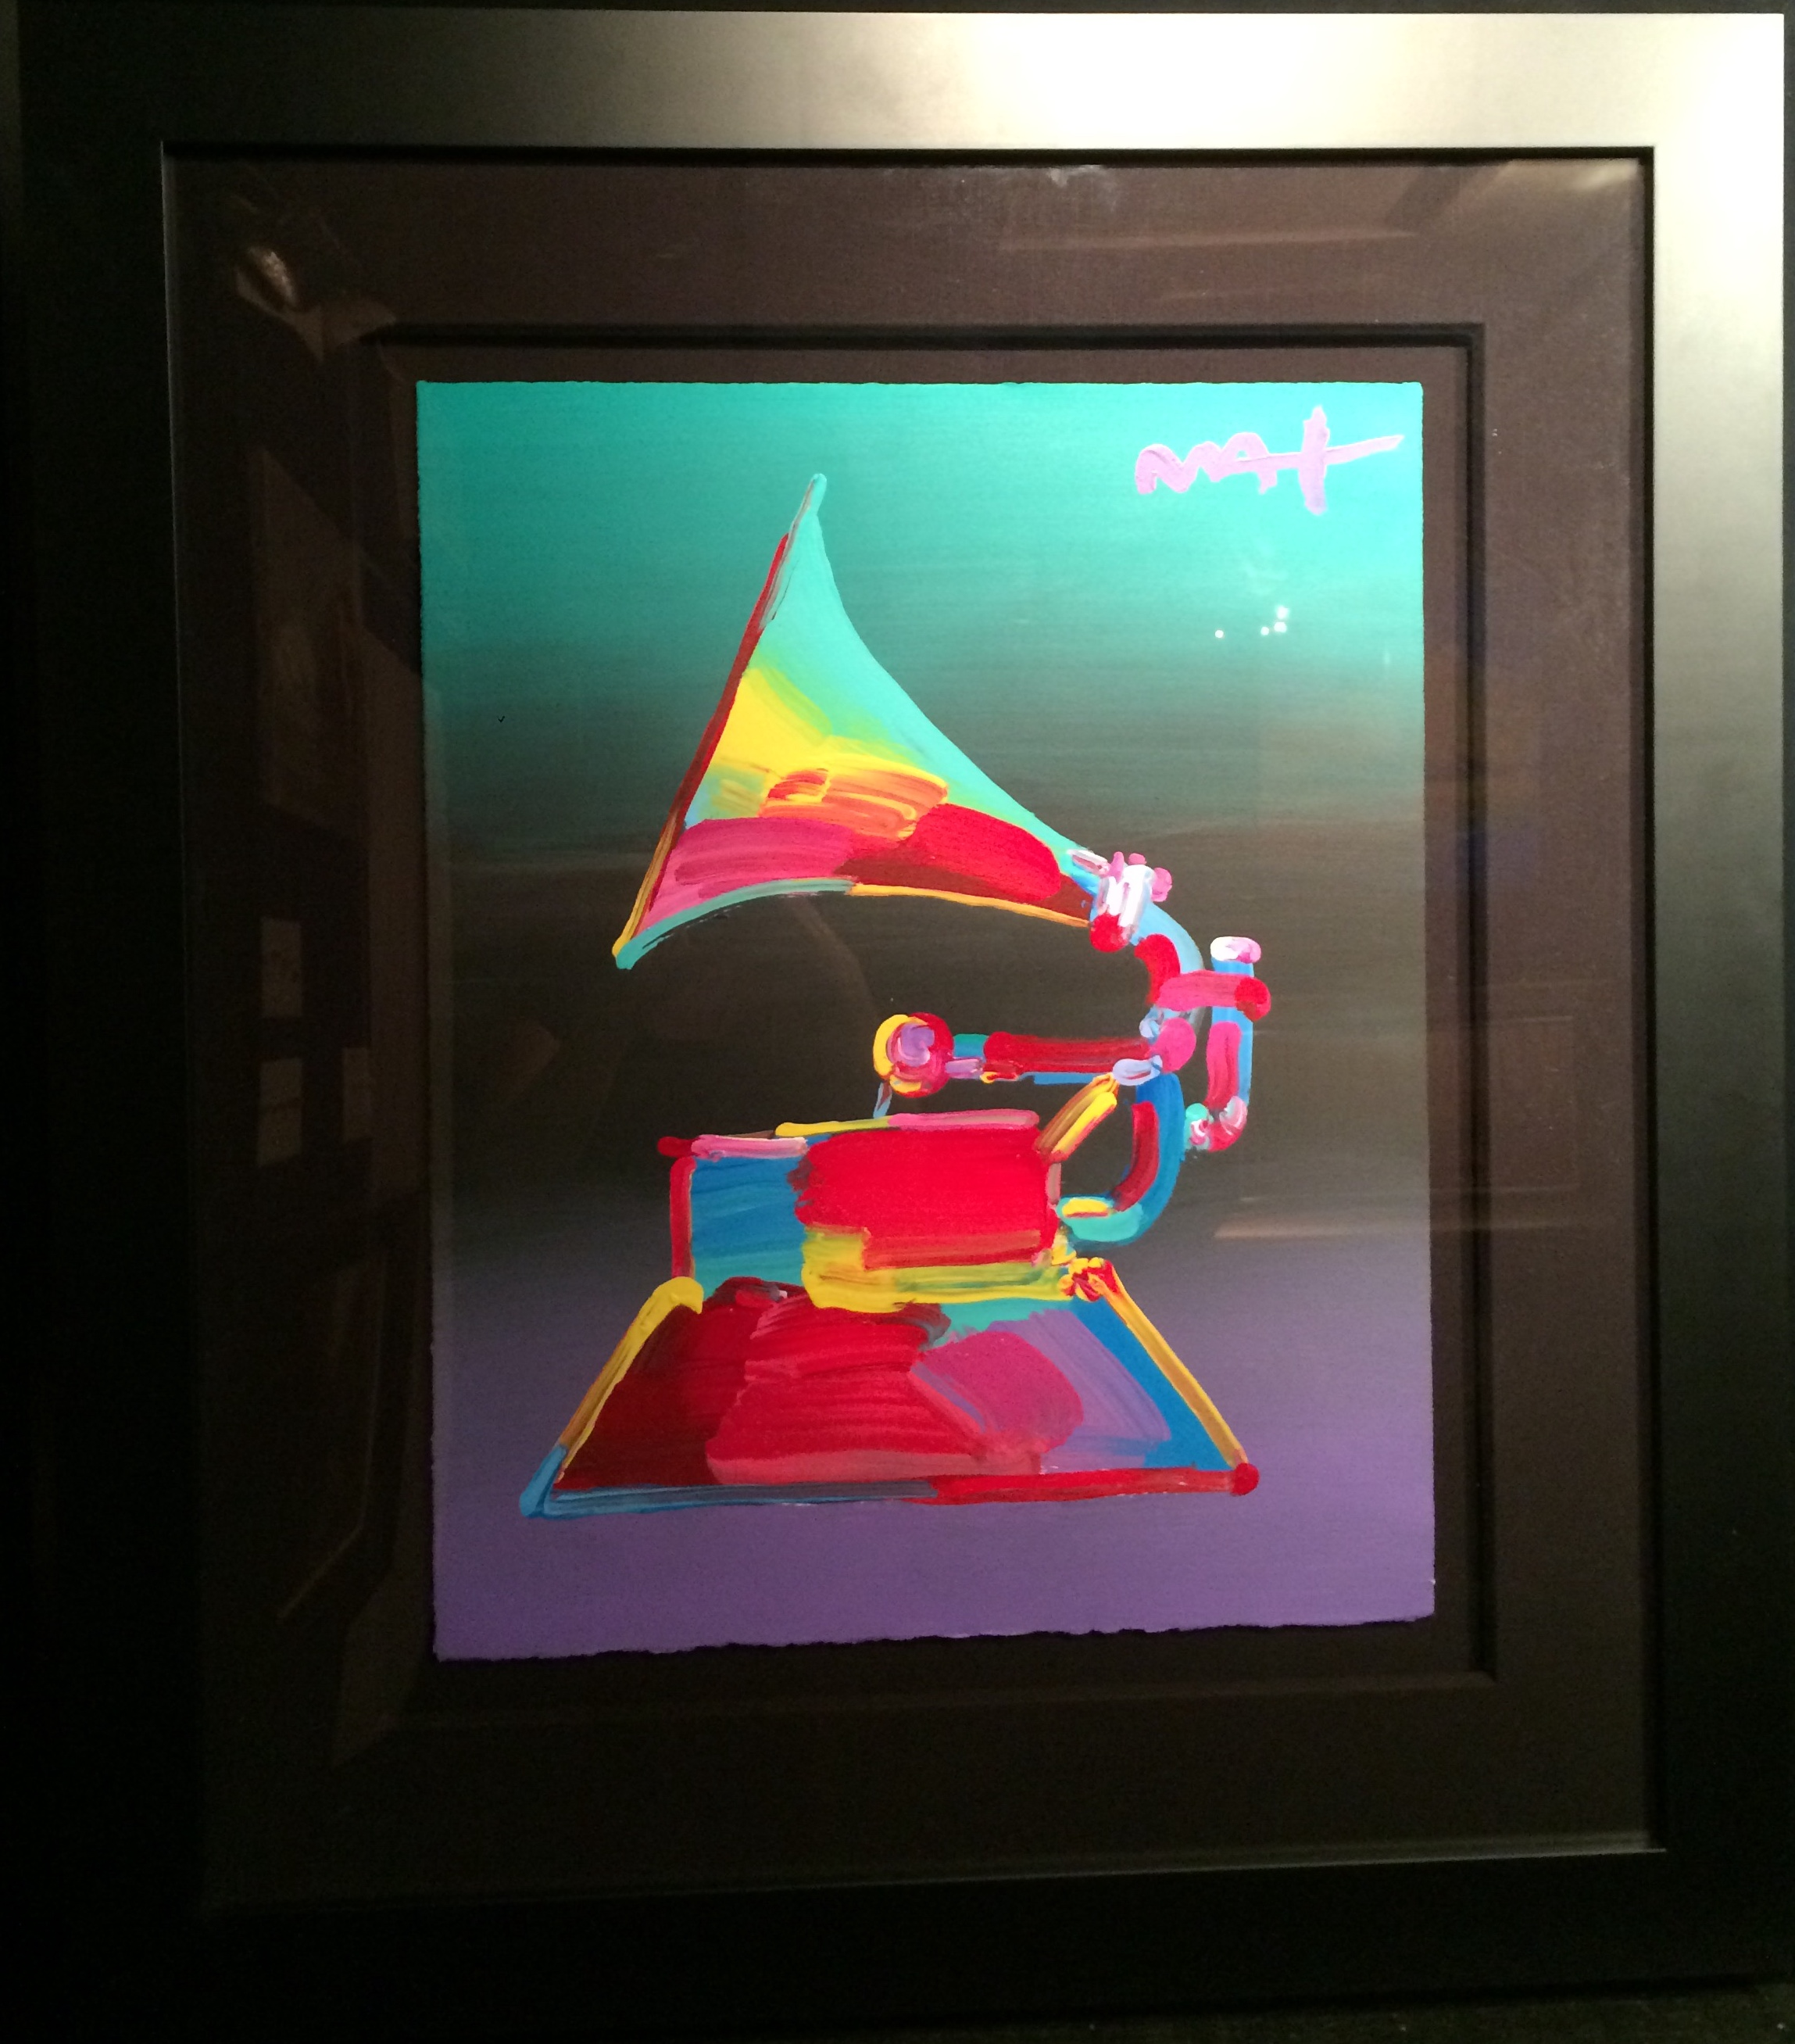 Grammy '89 - Available as Commission